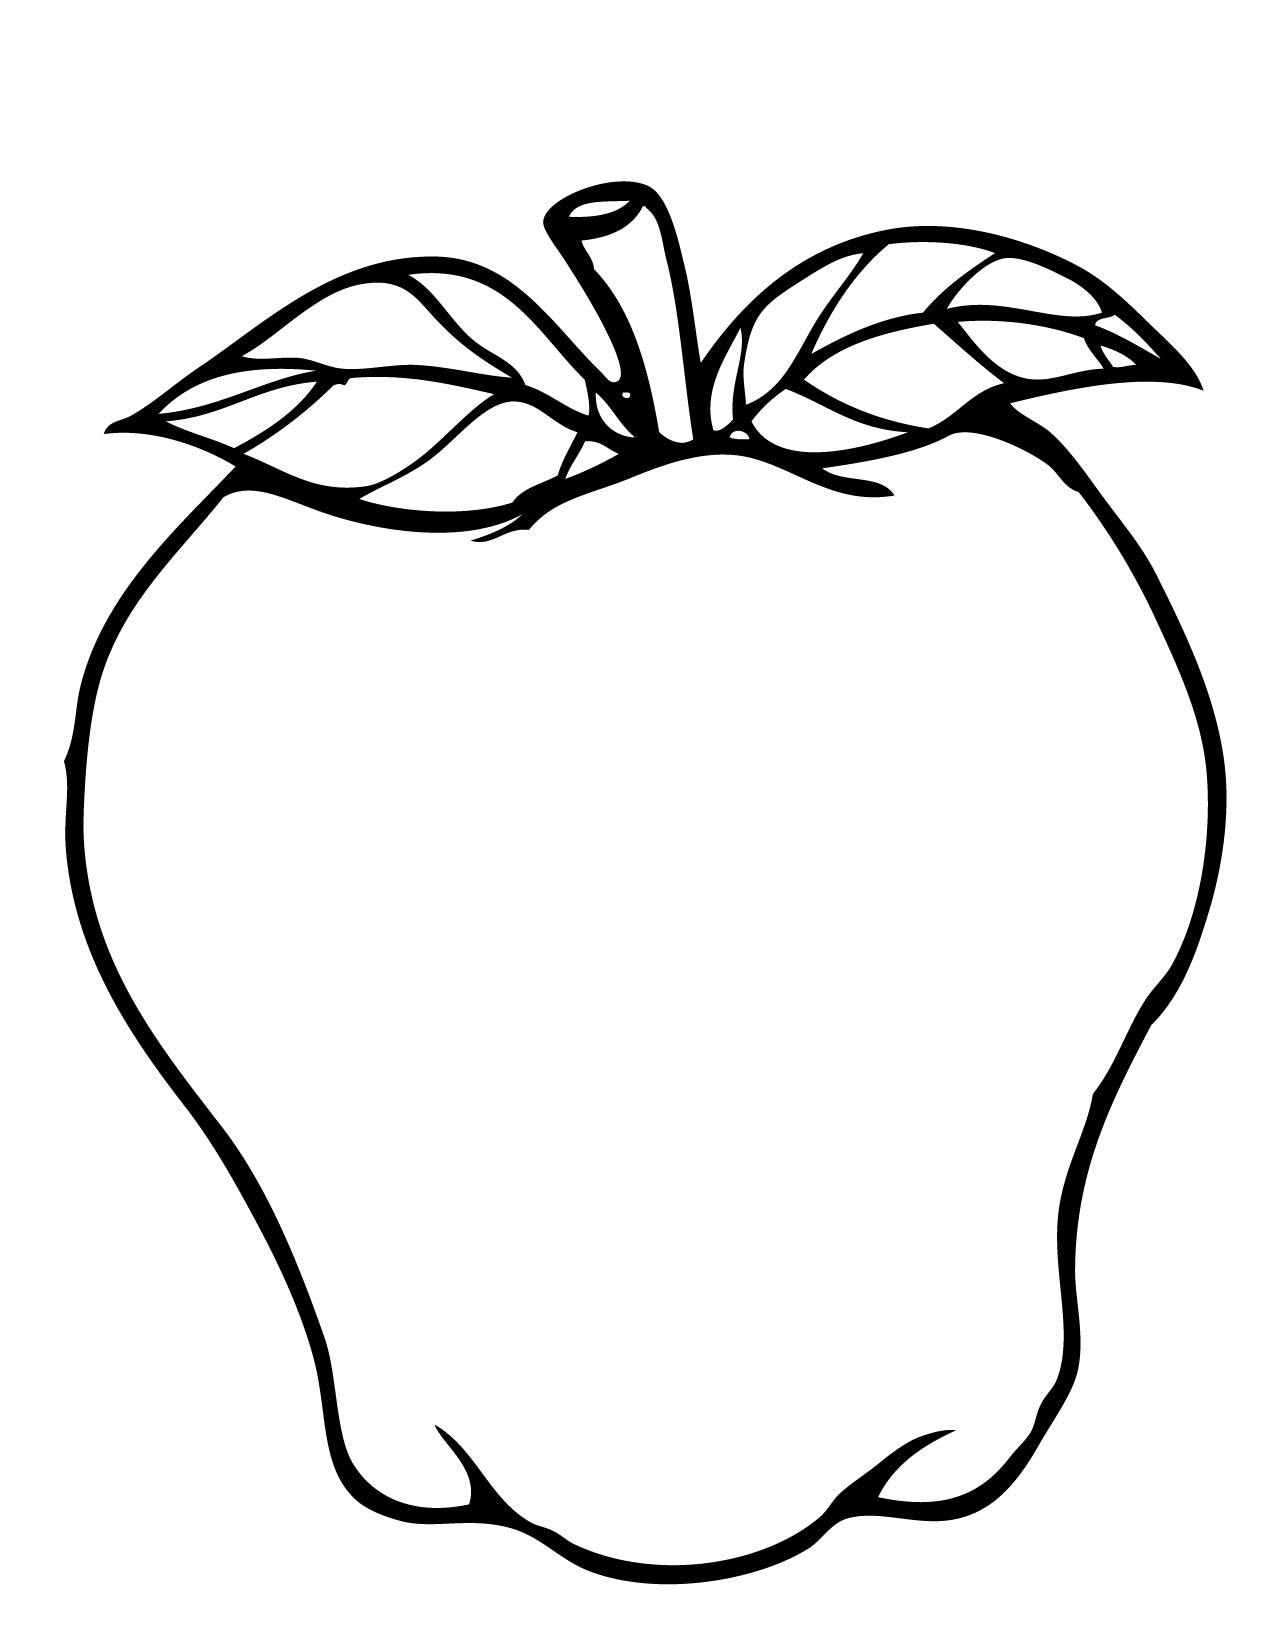 coloring apple apple coloring pages fotolipcom rich image and wallpaper apple coloring